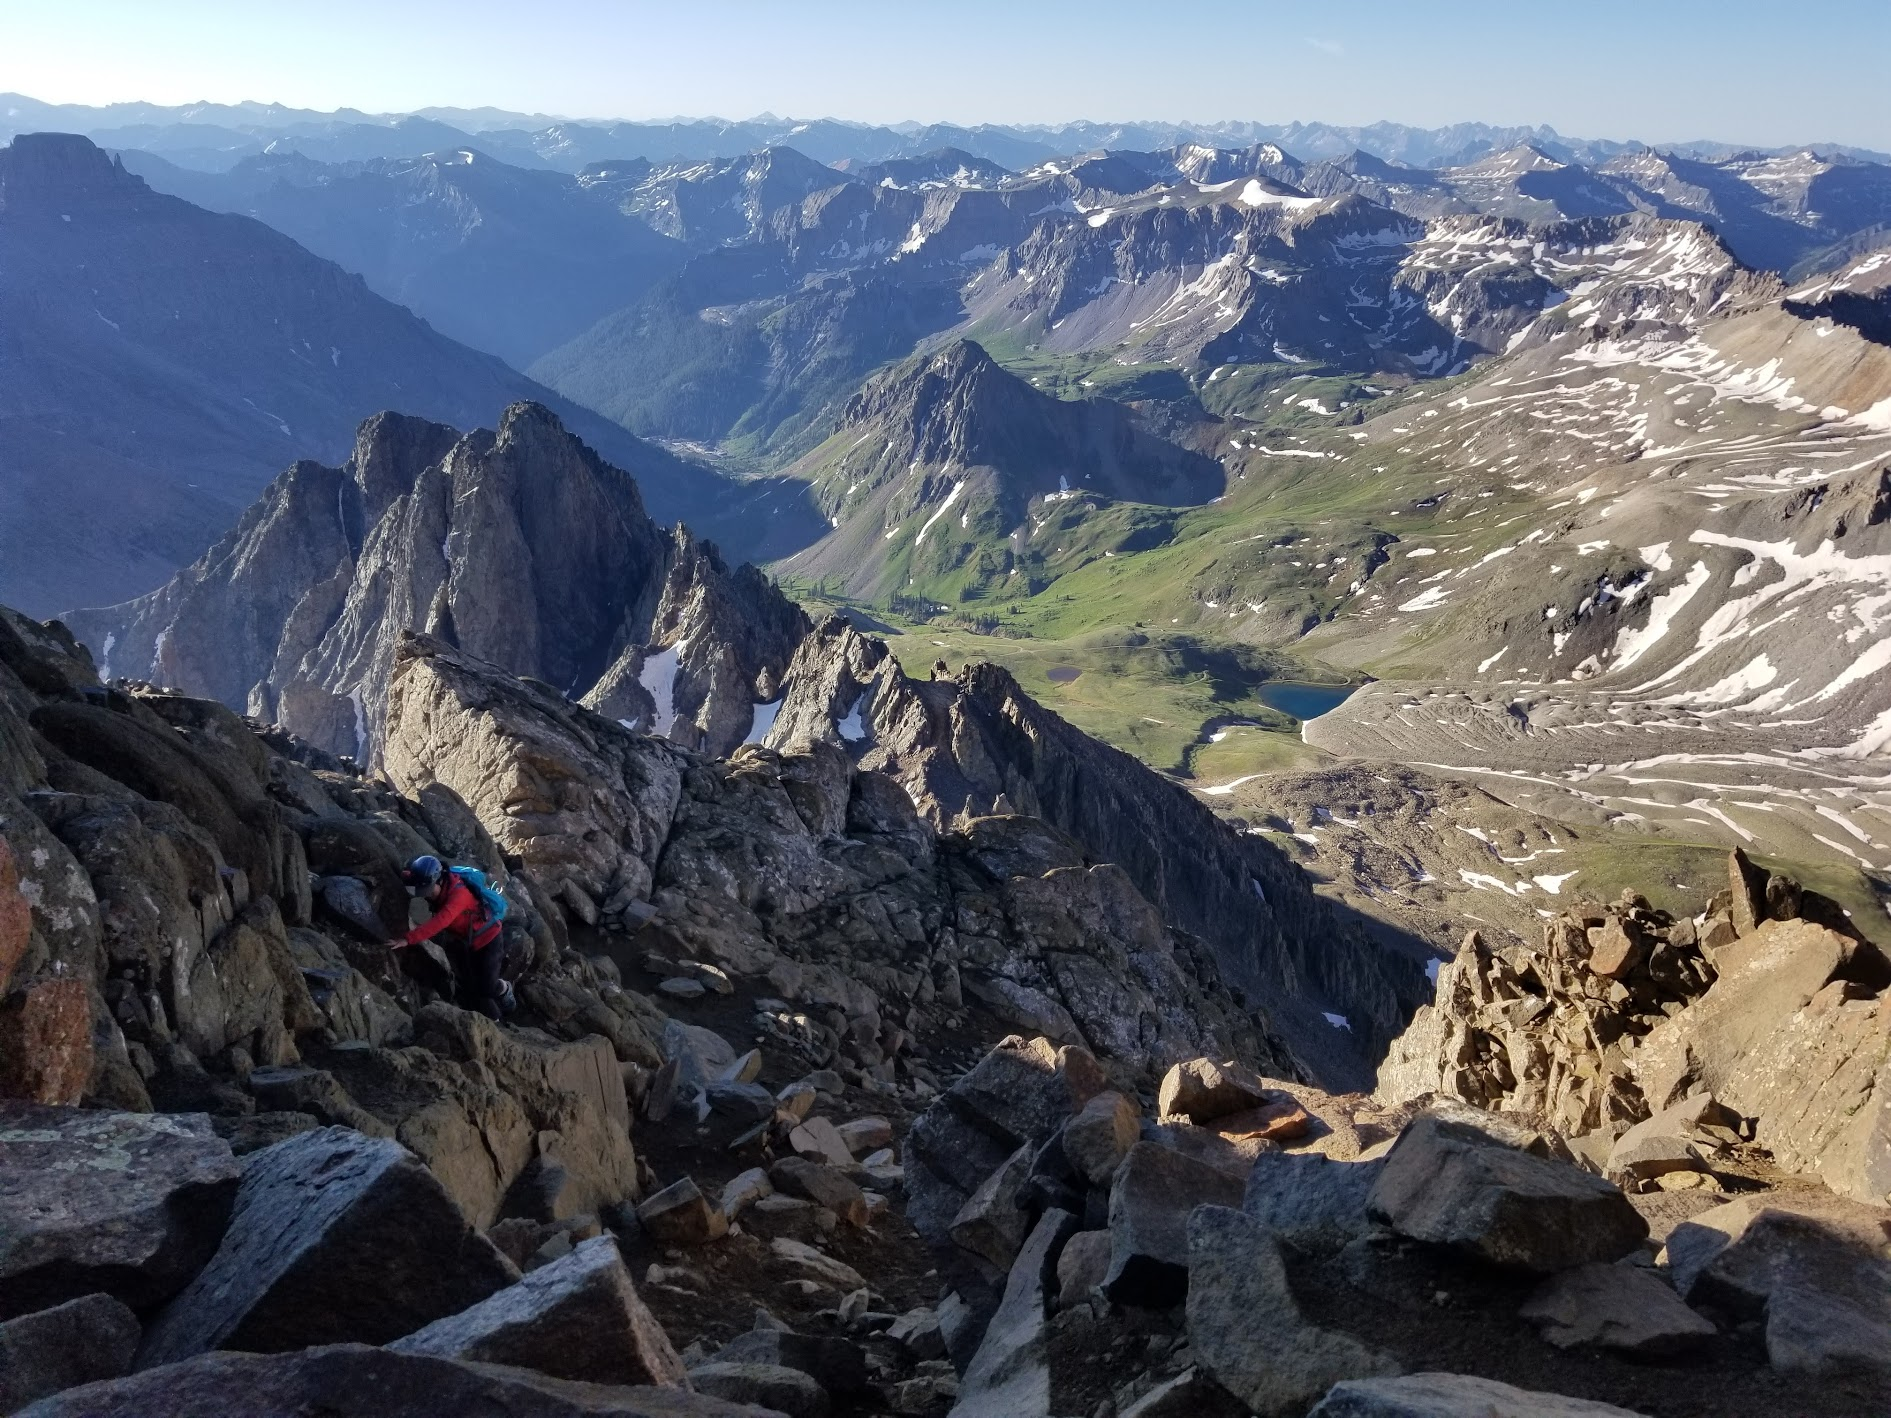 A climber in blue backpack is scrambling up a rocky path